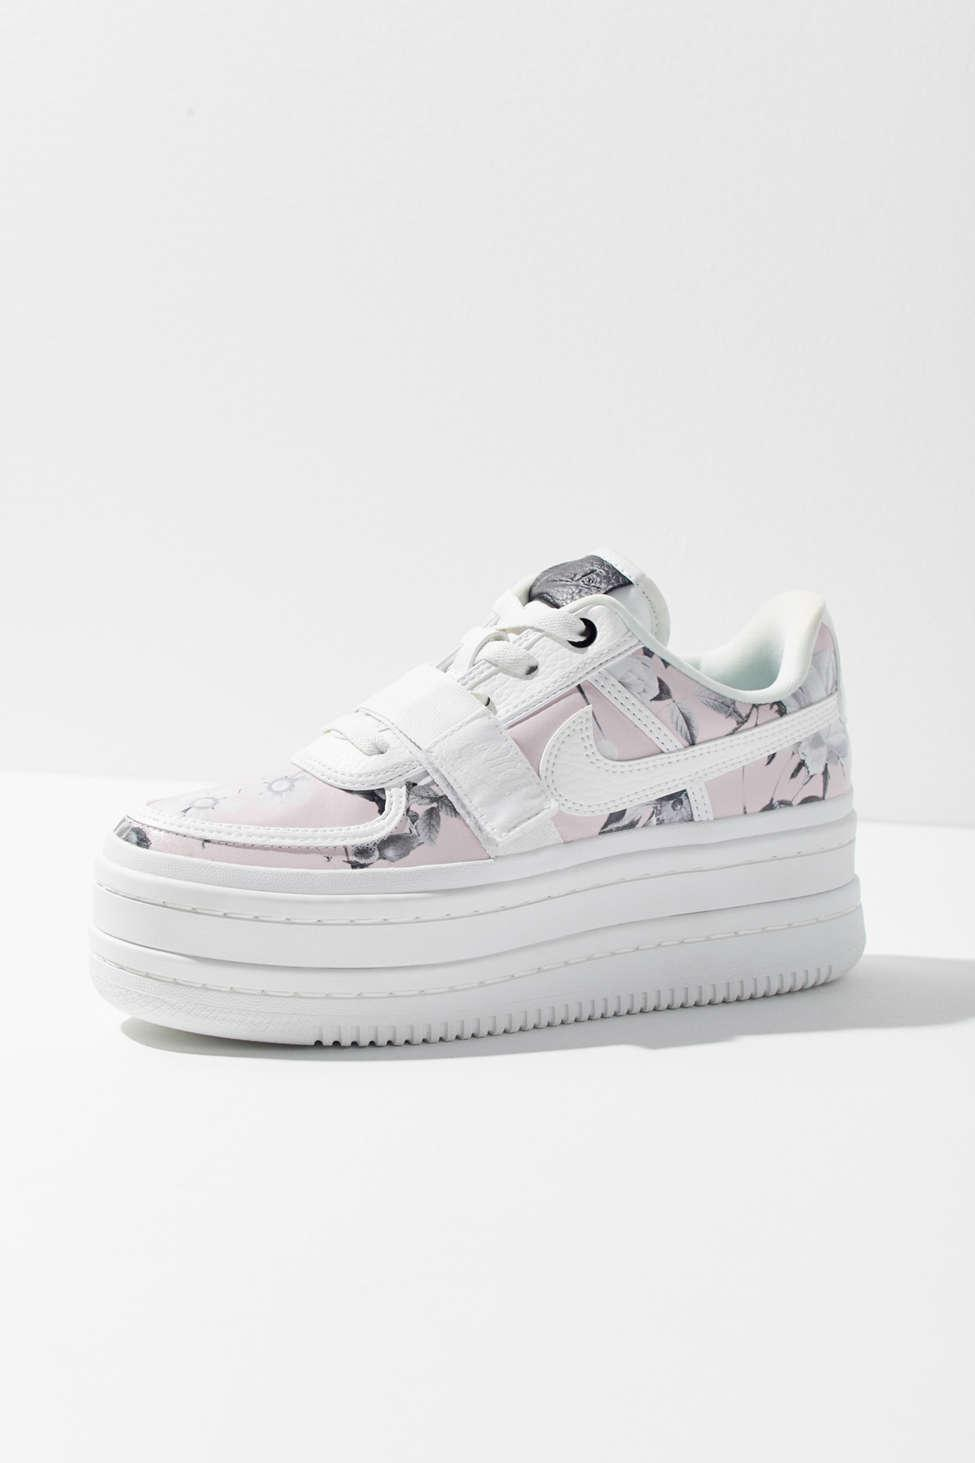 Nike Leather Wmns Vandal 2k in White